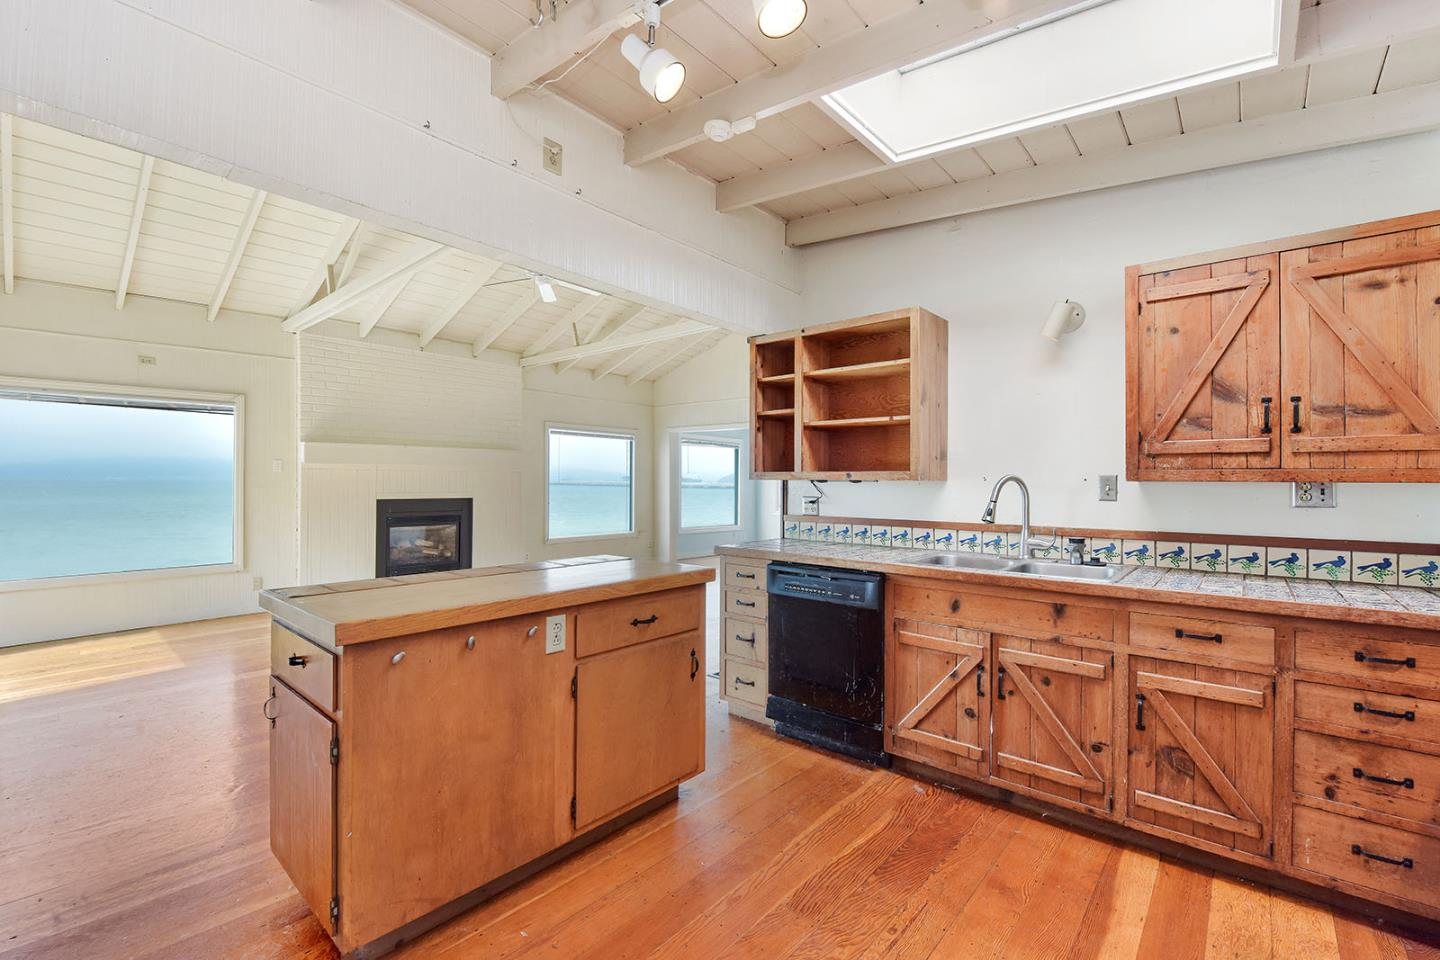 Additional photo for property listing at 651 Ocean Avenue 651 Ocean Avenue Richmond, カリフォルニア 94801 アメリカ合衆国